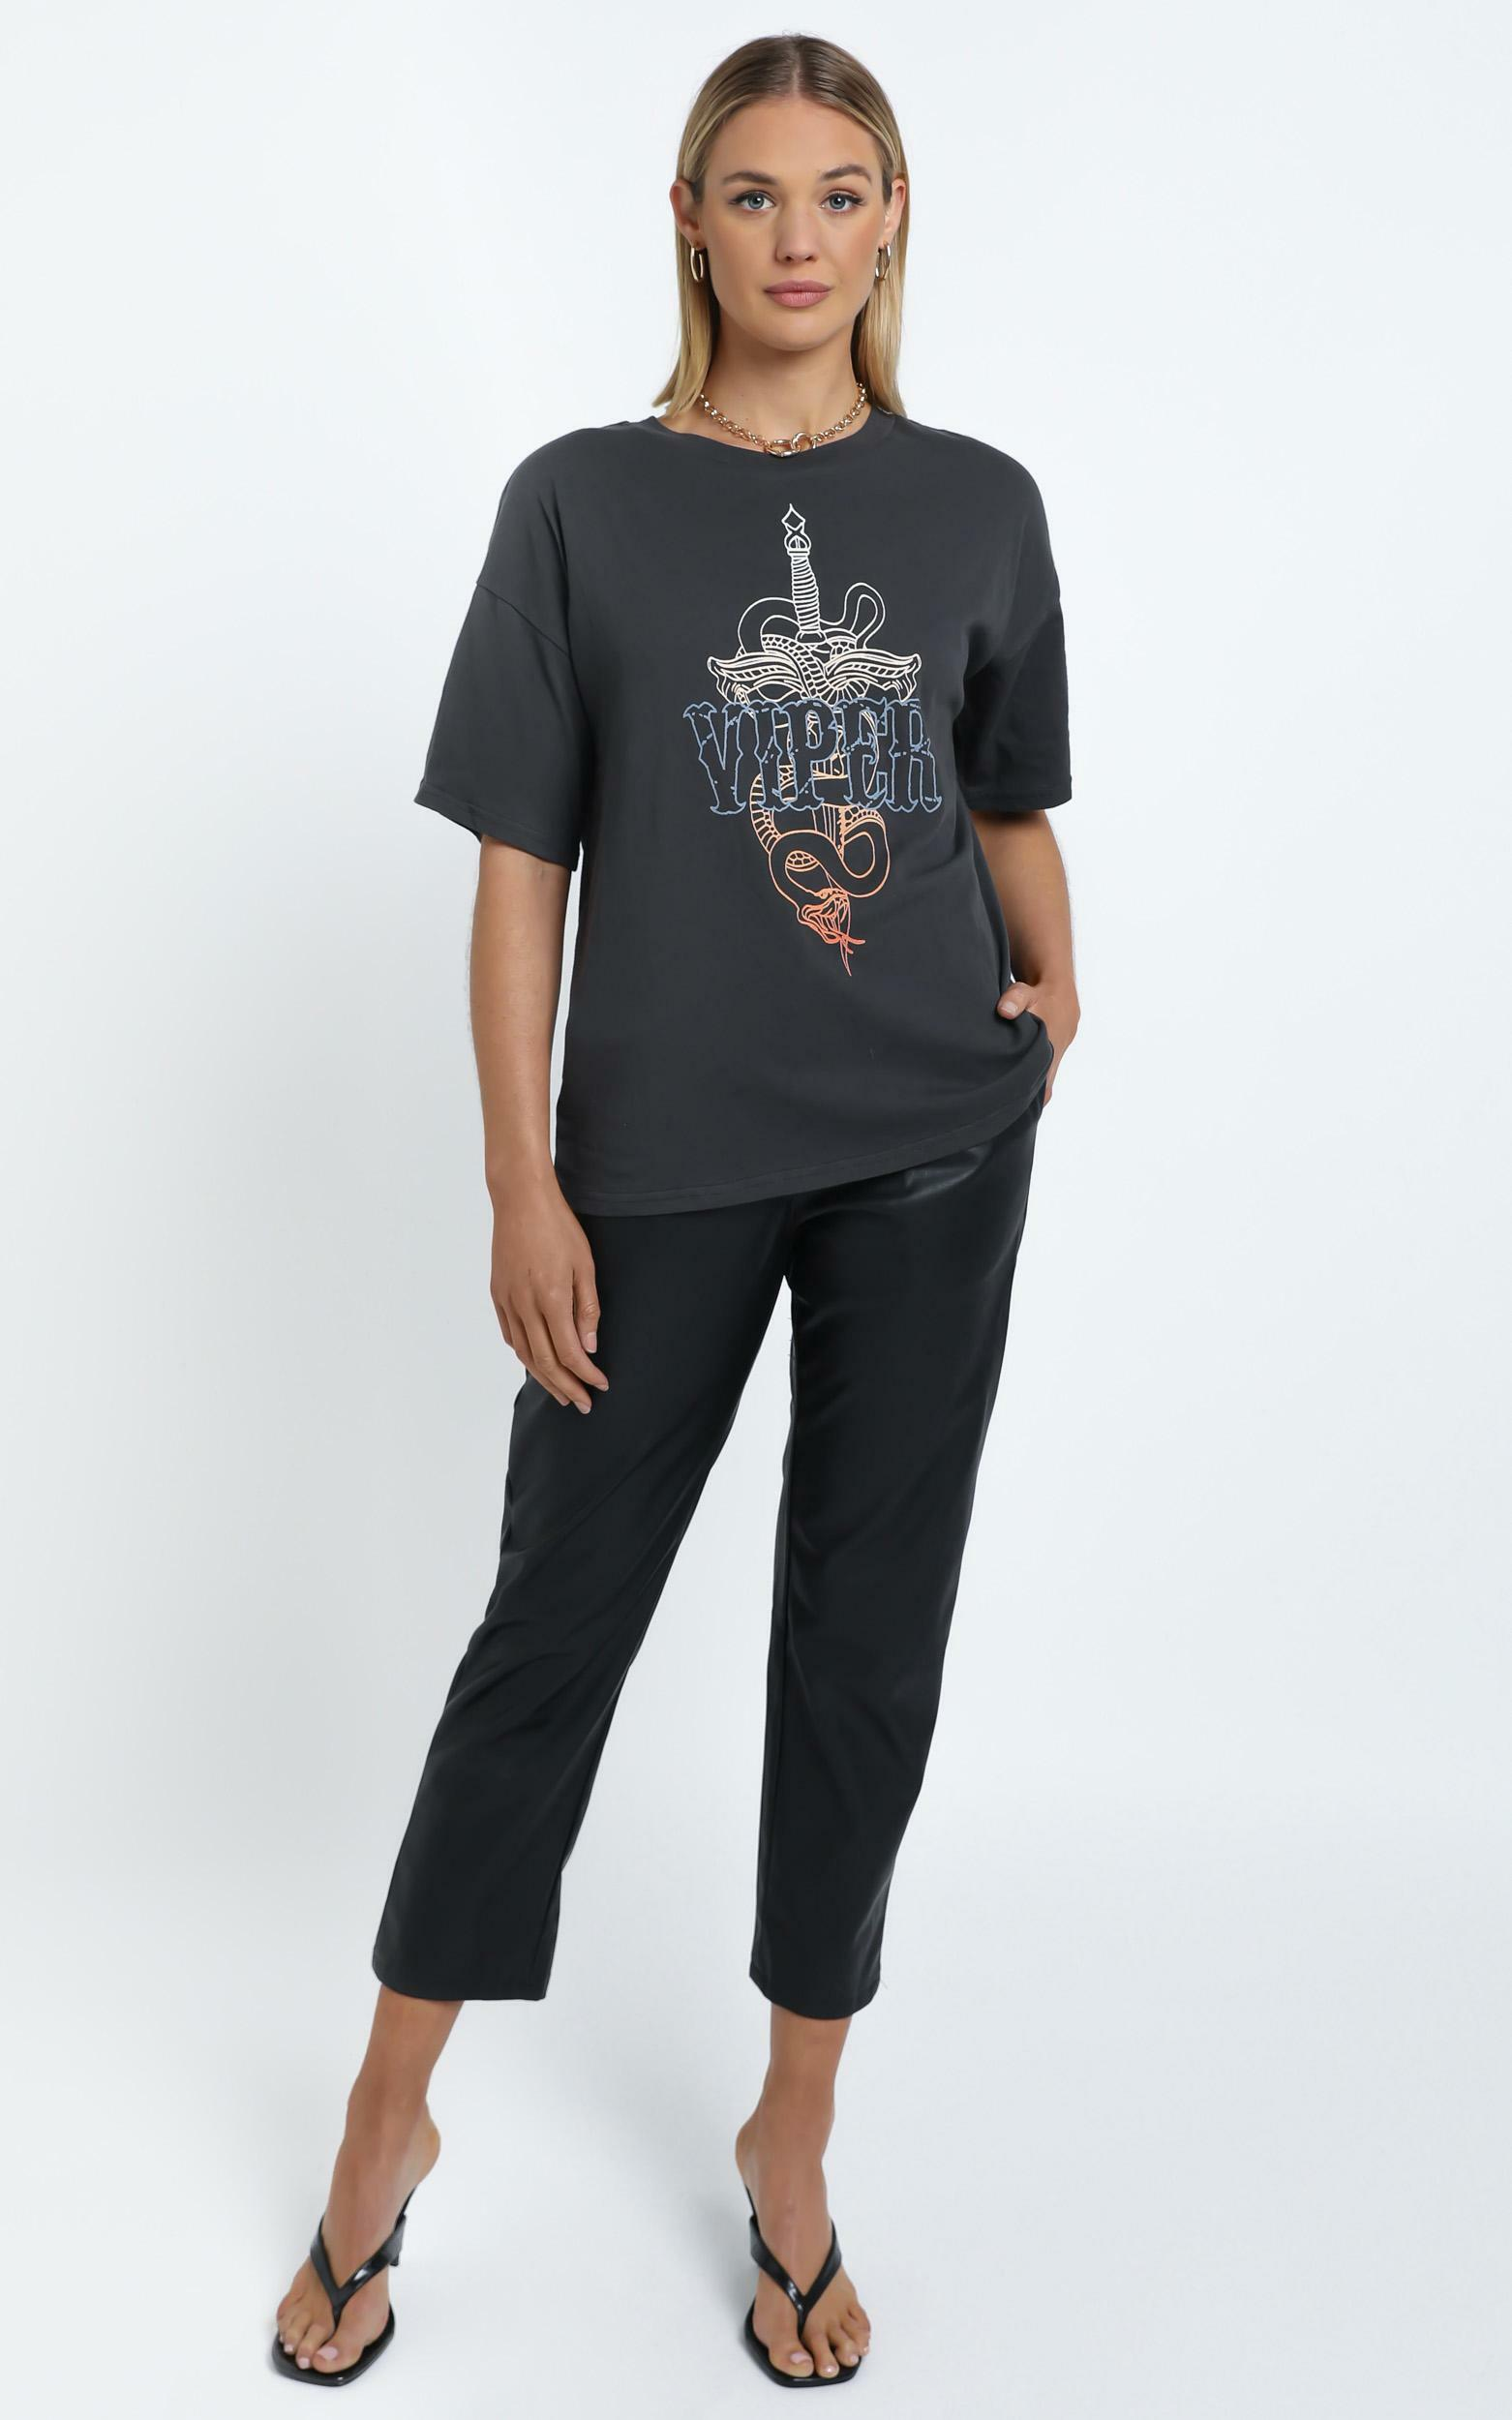 Twiin - Pick Your Poison Tee in Multi - 12 (L), BLK1, hi-res image number null